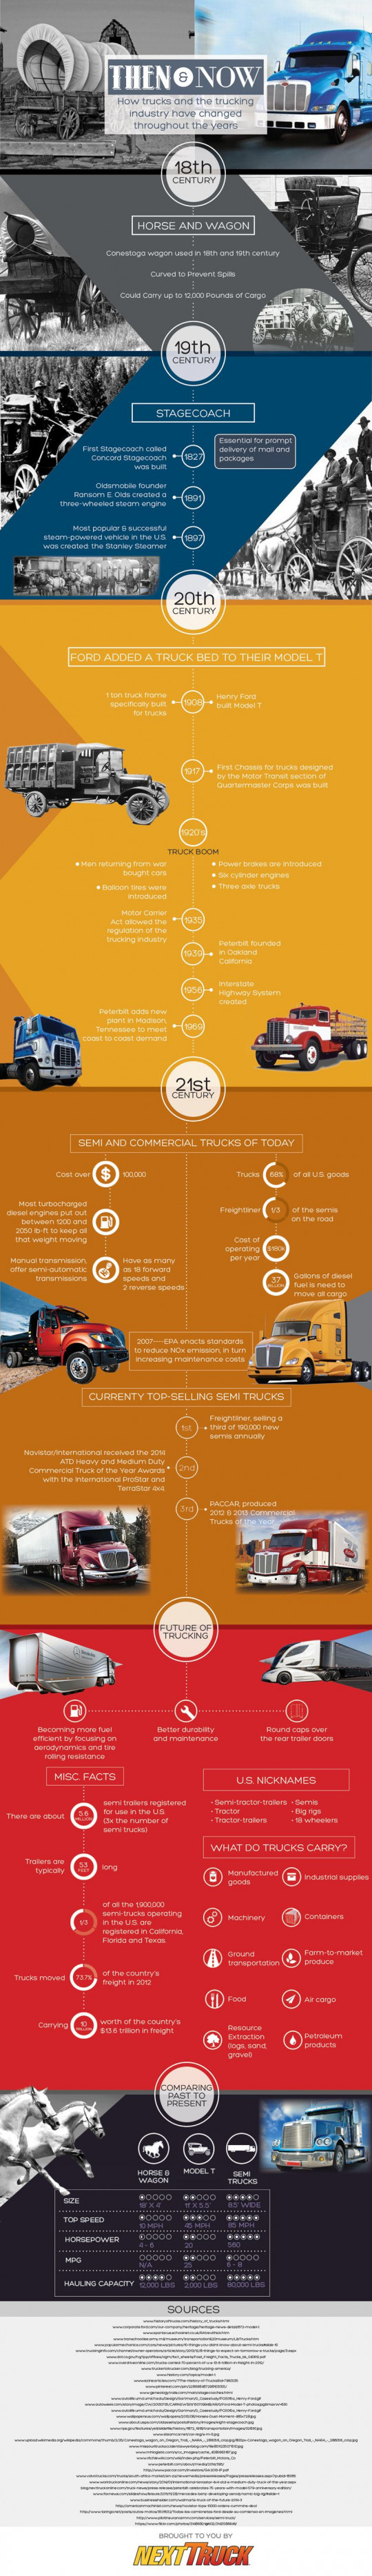 Then & Now: How Trucks and the Trucking Industry Have Changed Throughout the Years